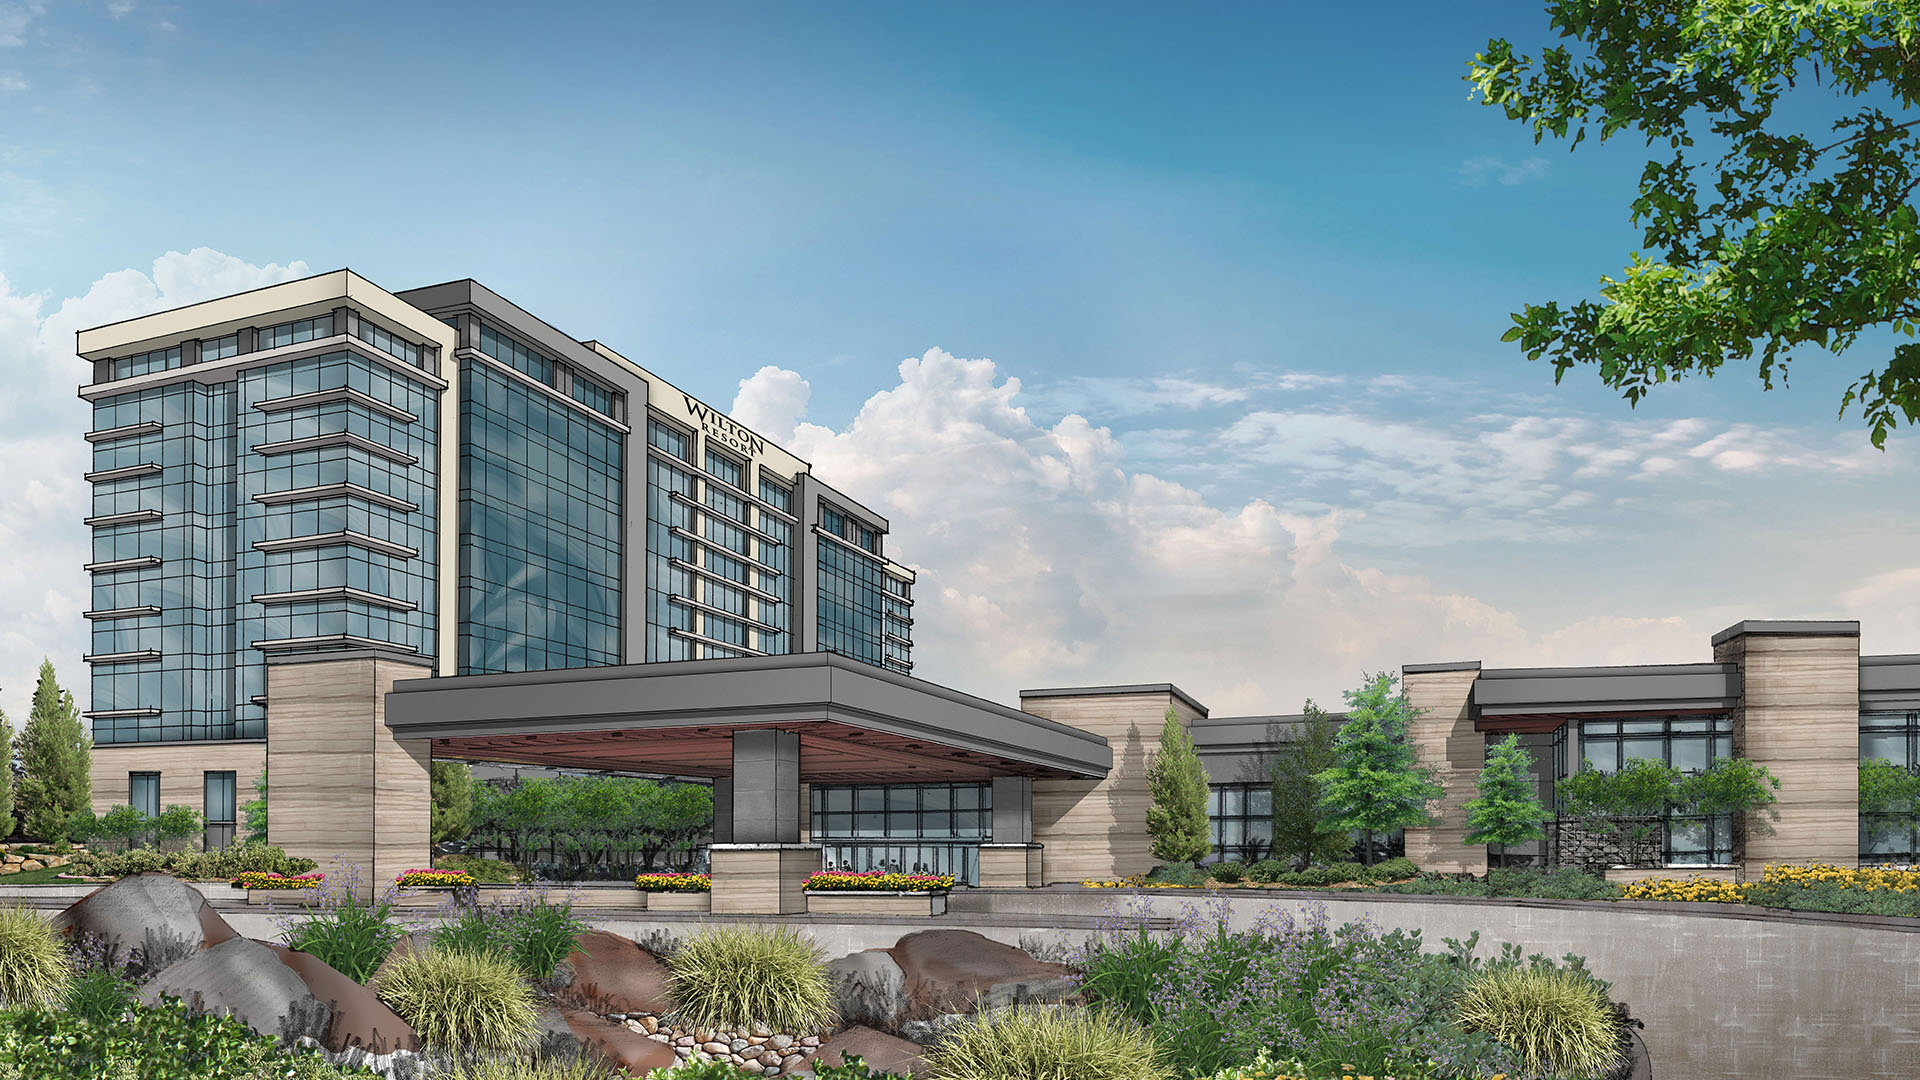 Wilton Rancheria slated to break ground on long-awaited gaming facility